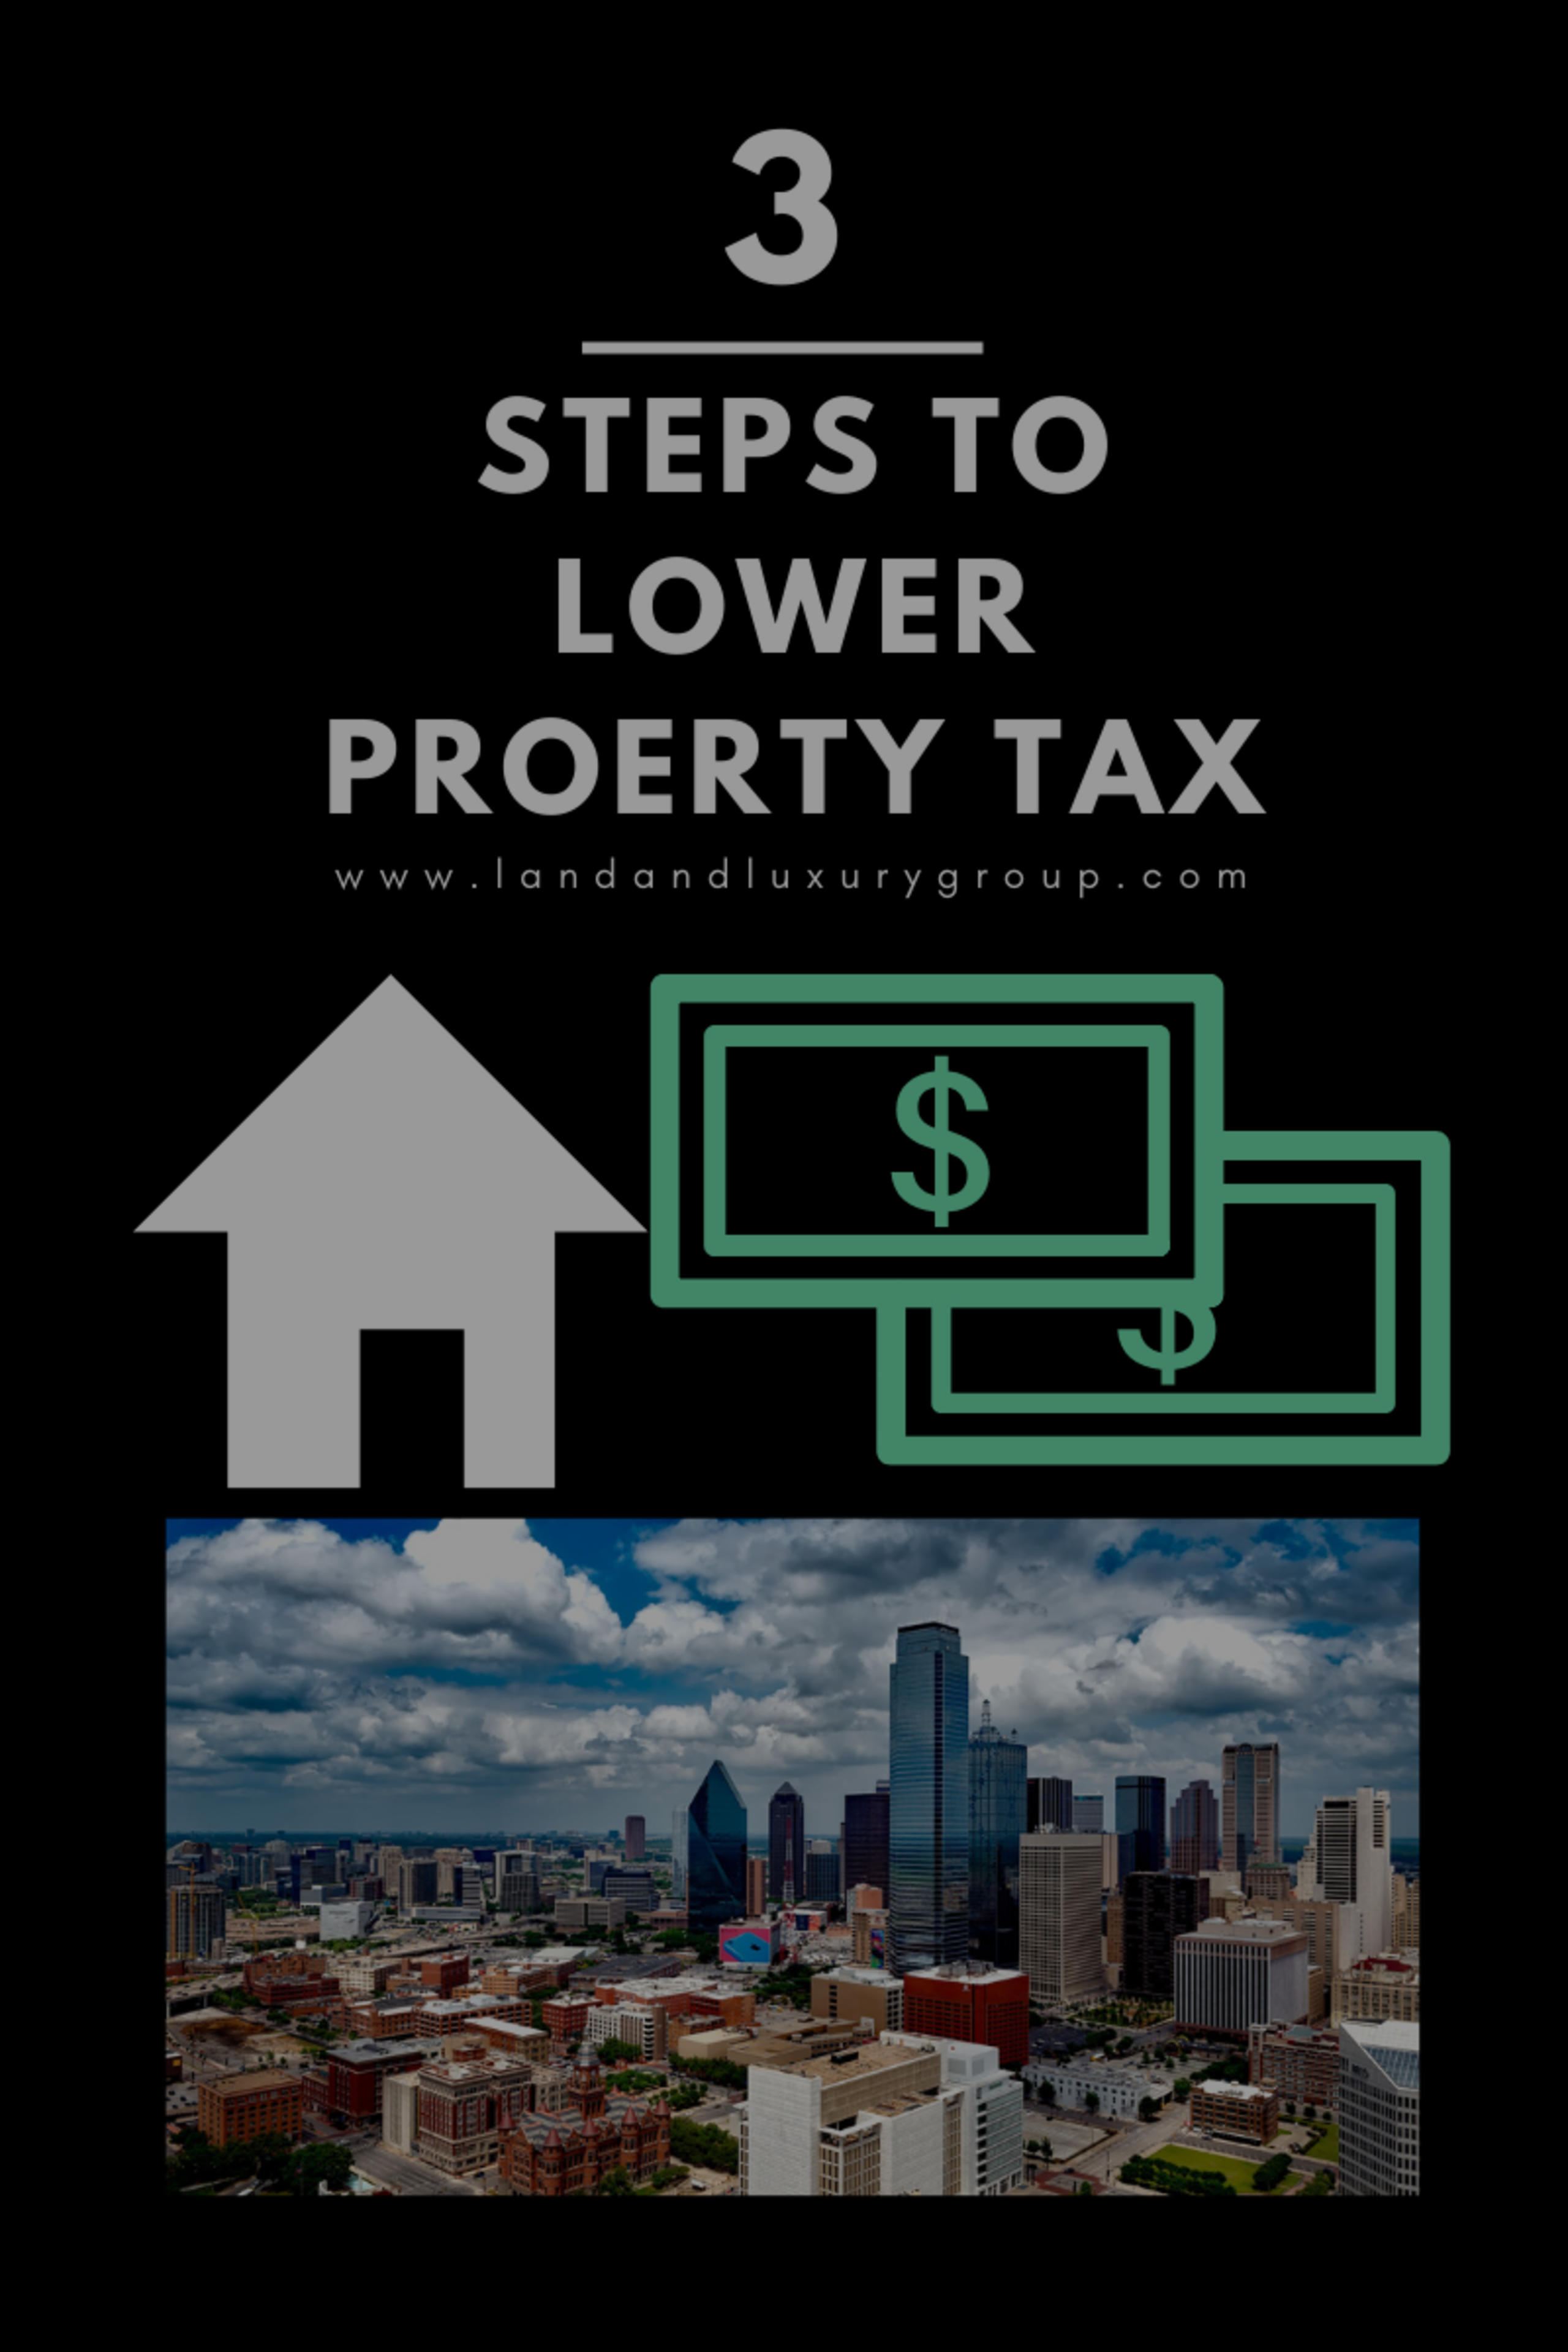 Lowering Property Tax